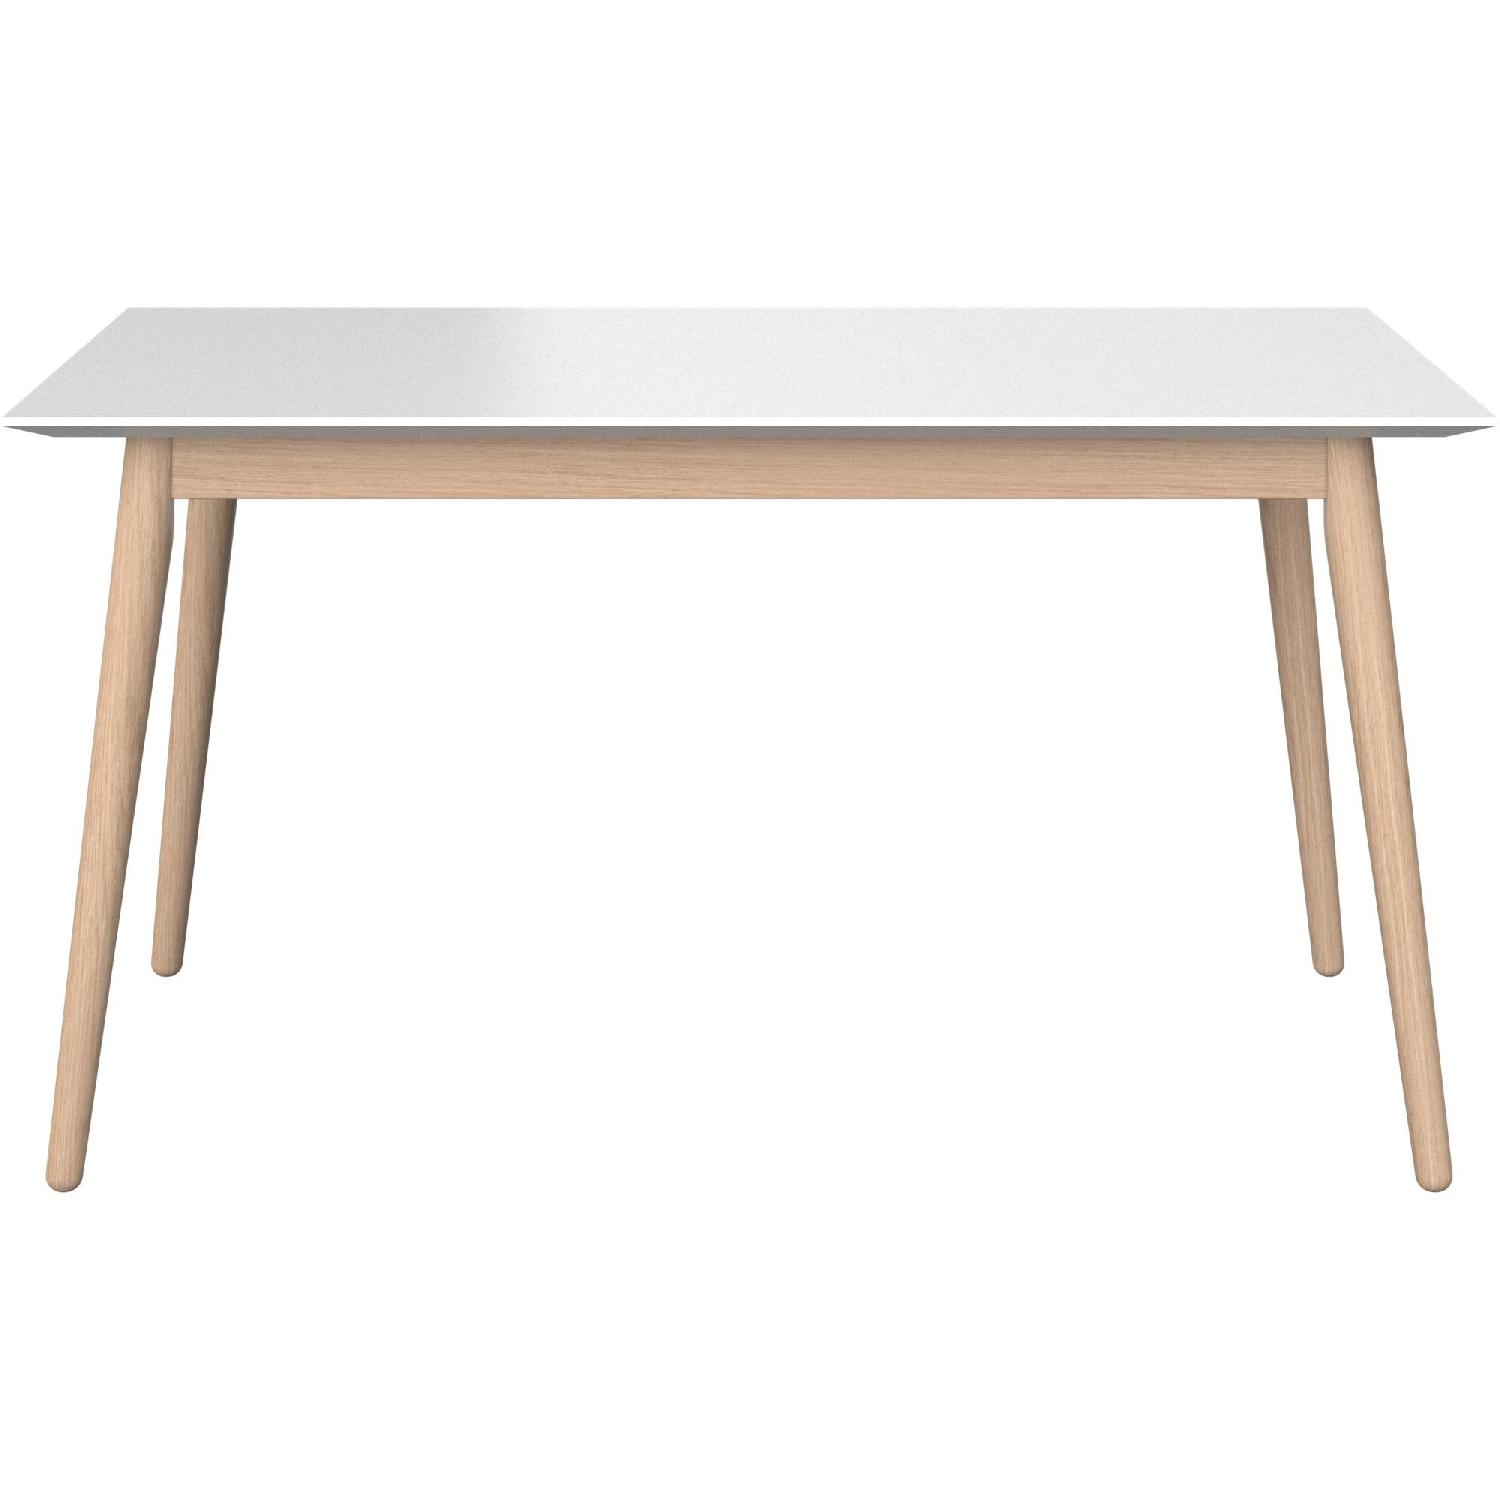 BoConcept Milano Dining Table - image-3